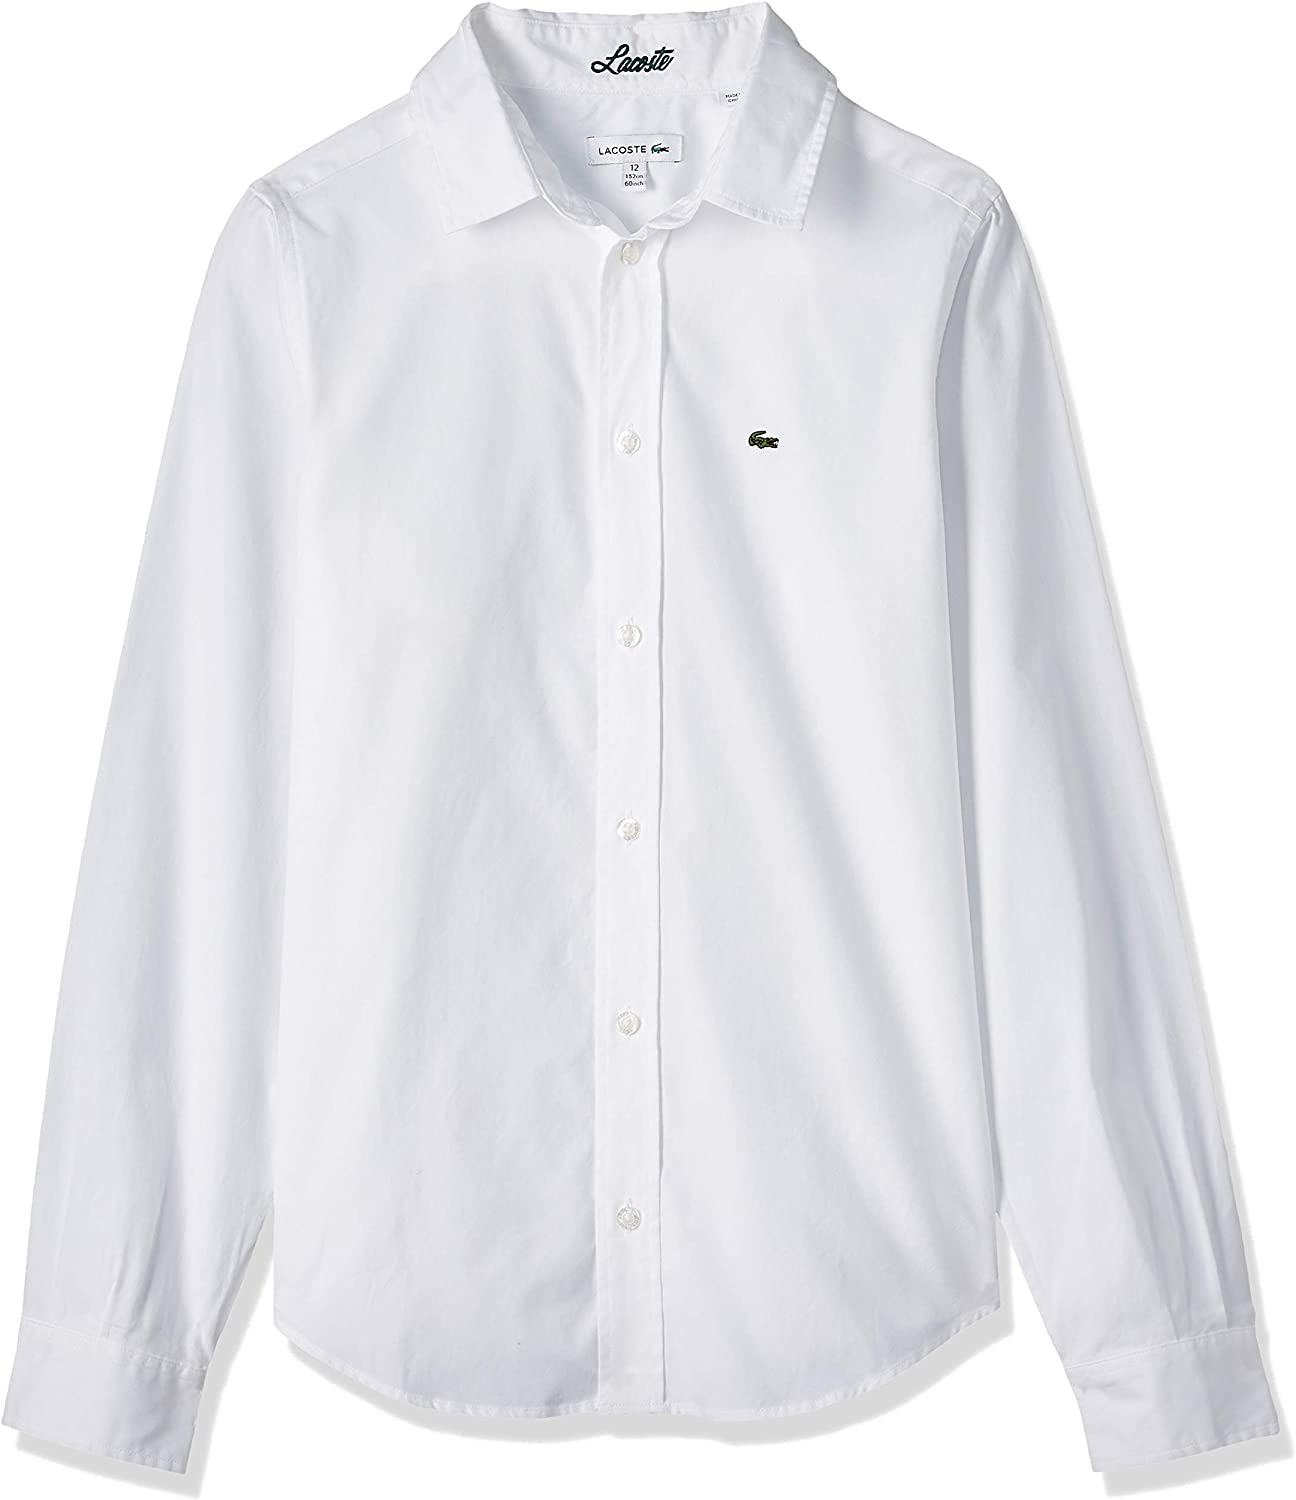 Lacoste Boy shop Long Sleeve Woven Classic Limited price sale Shirt Oxford